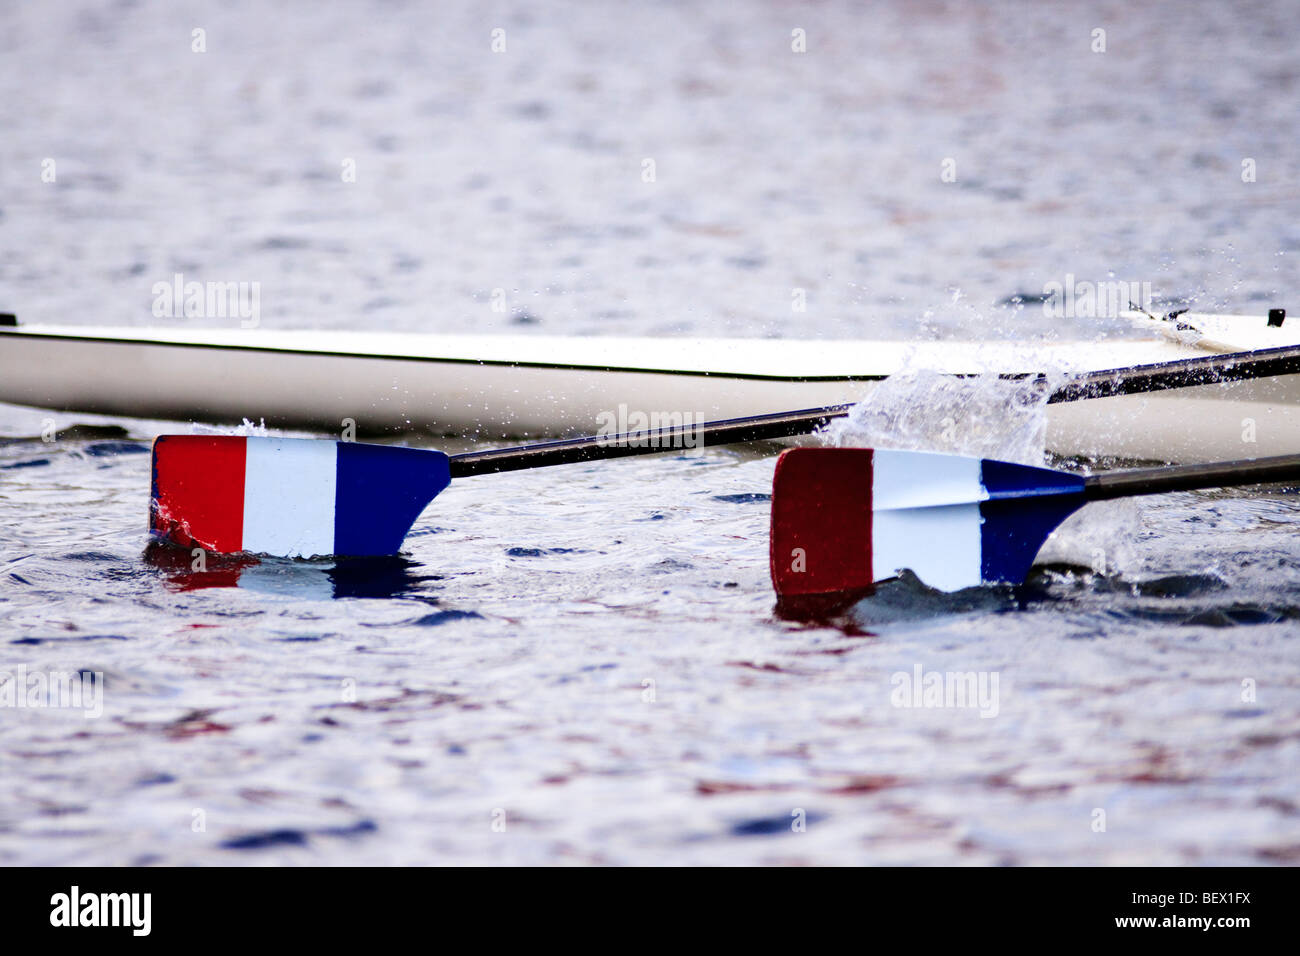 two blades of a racing boat splashing in the water during a rowing event - colours are French flag but reversed - Stock Image